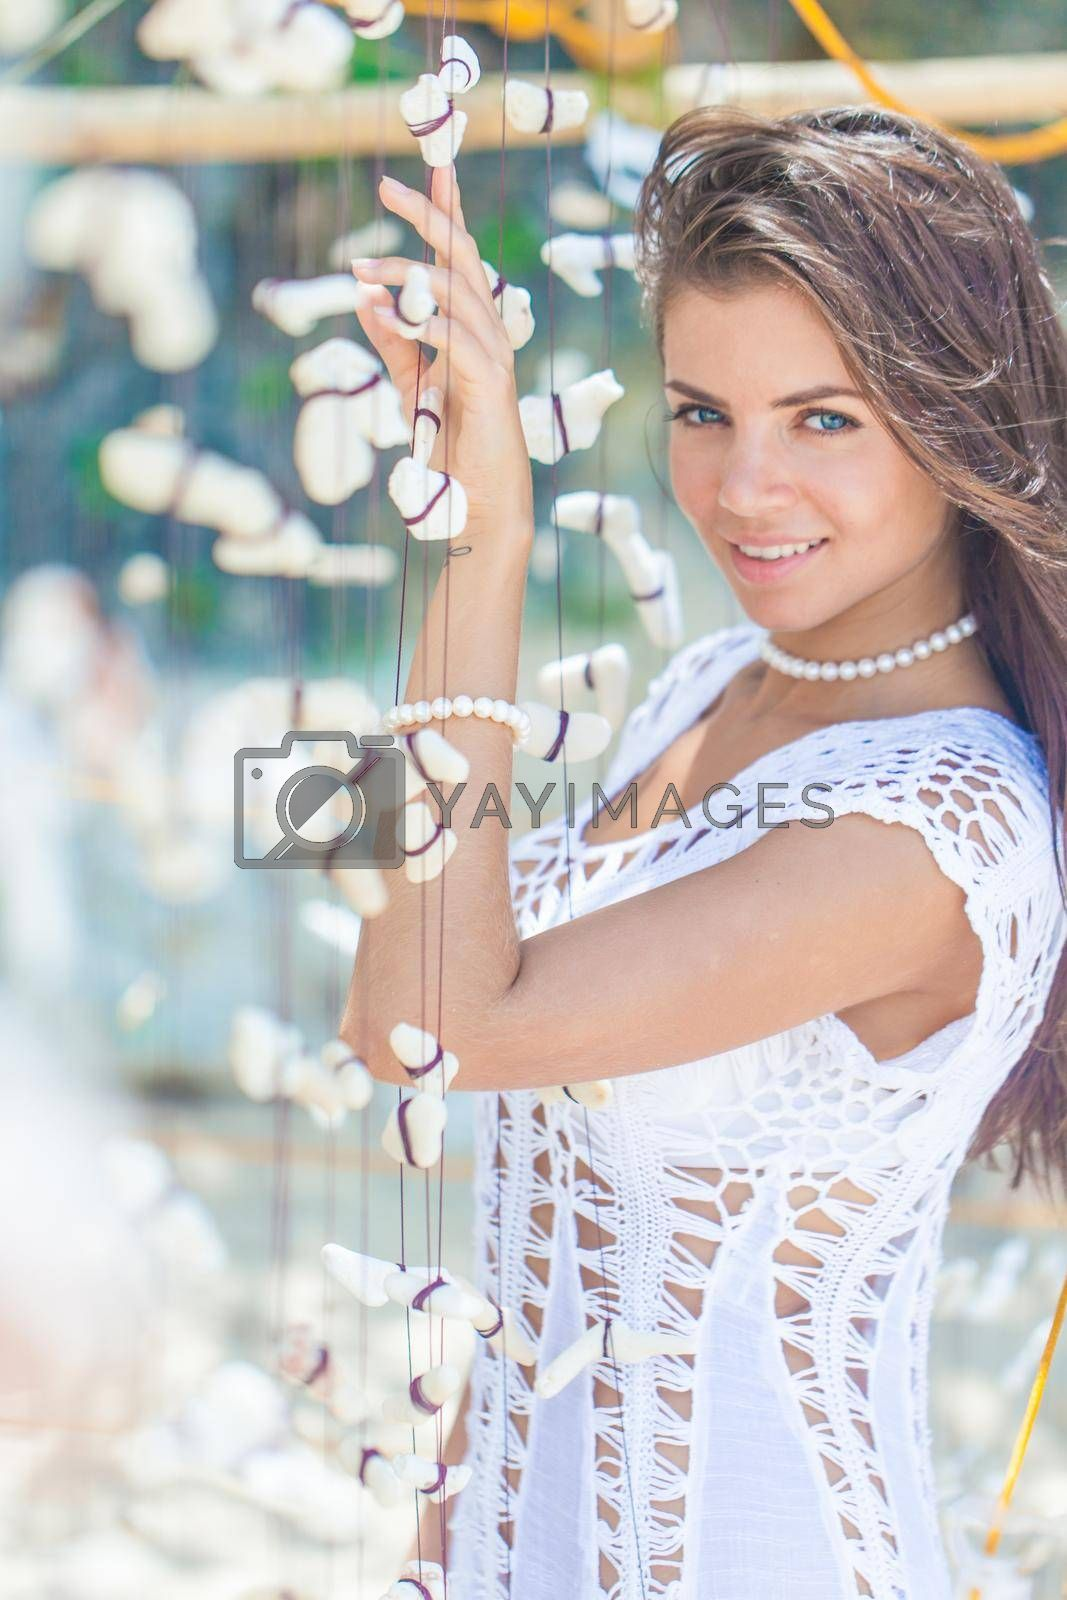 Royalty free image of Woman in white dress on vacation by Yellowj